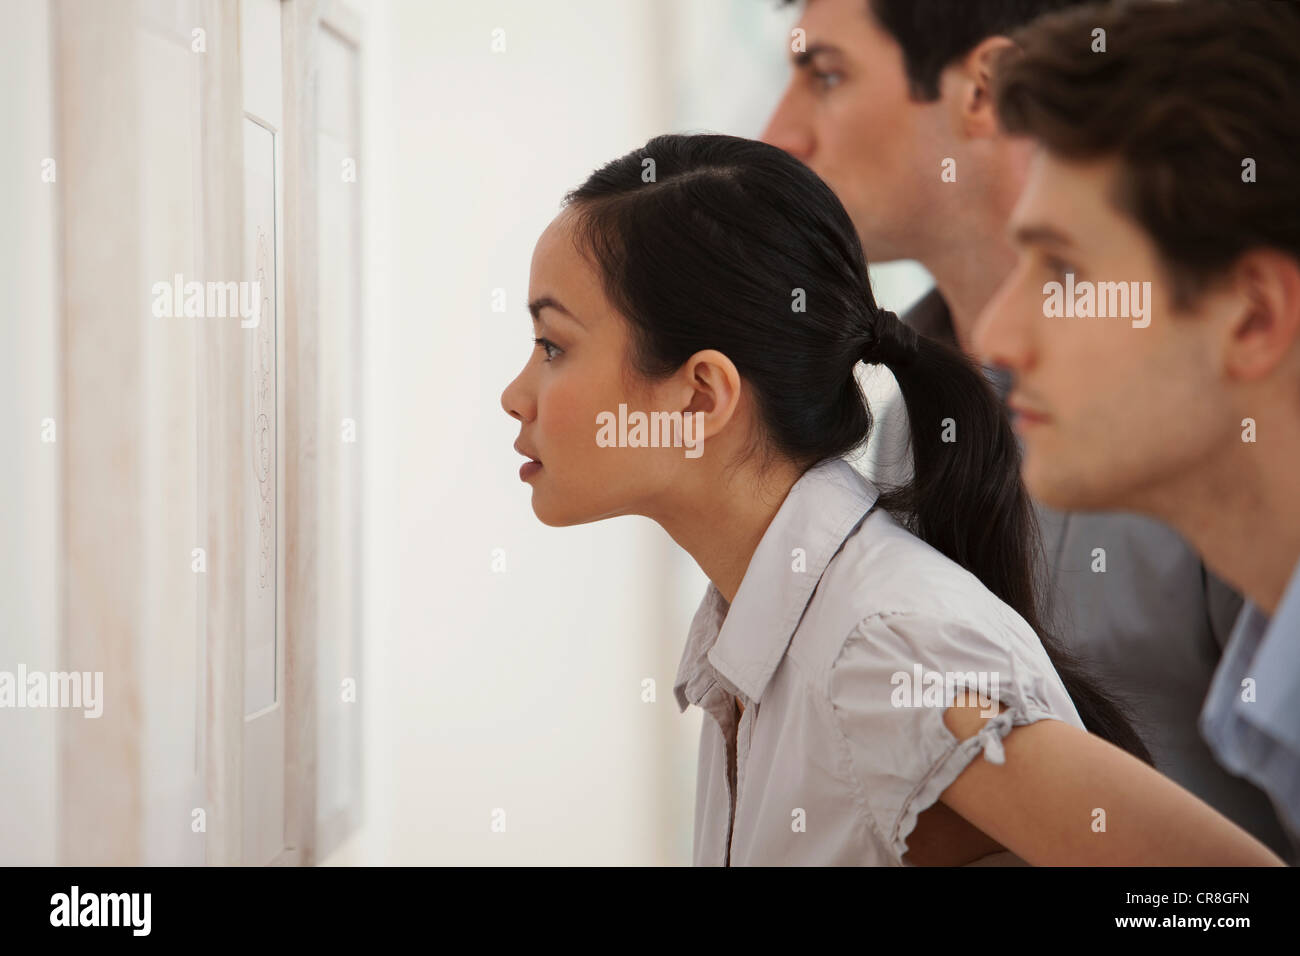 Young woman looking at picture in art gallery - Stock Image